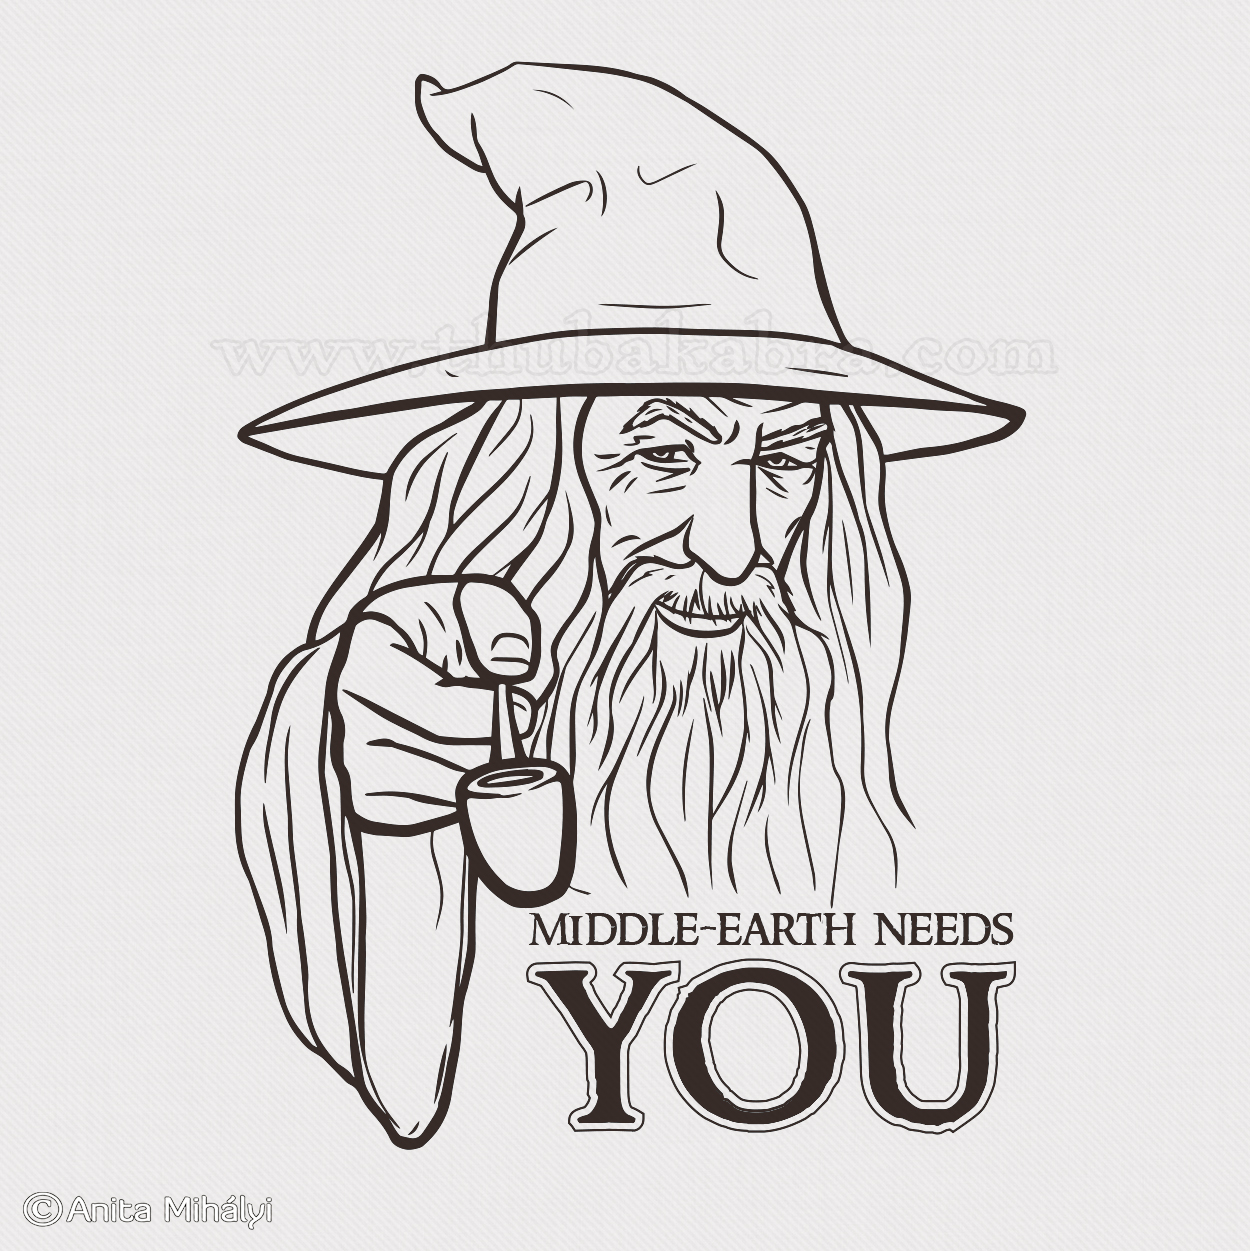 Gandalf Design Line Art